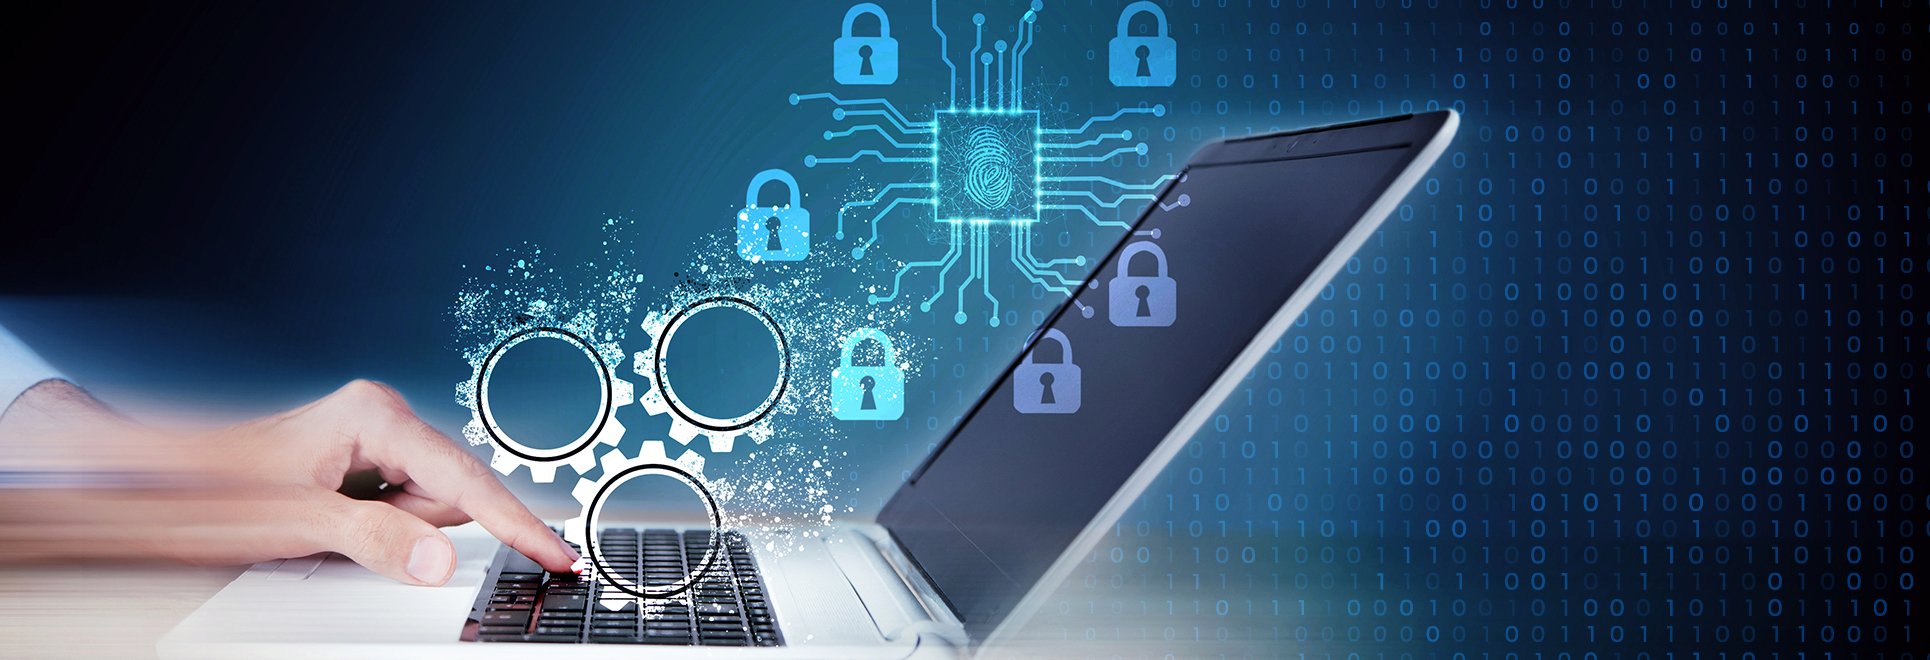 Top Cybersecurity Threats Our Devs Look For